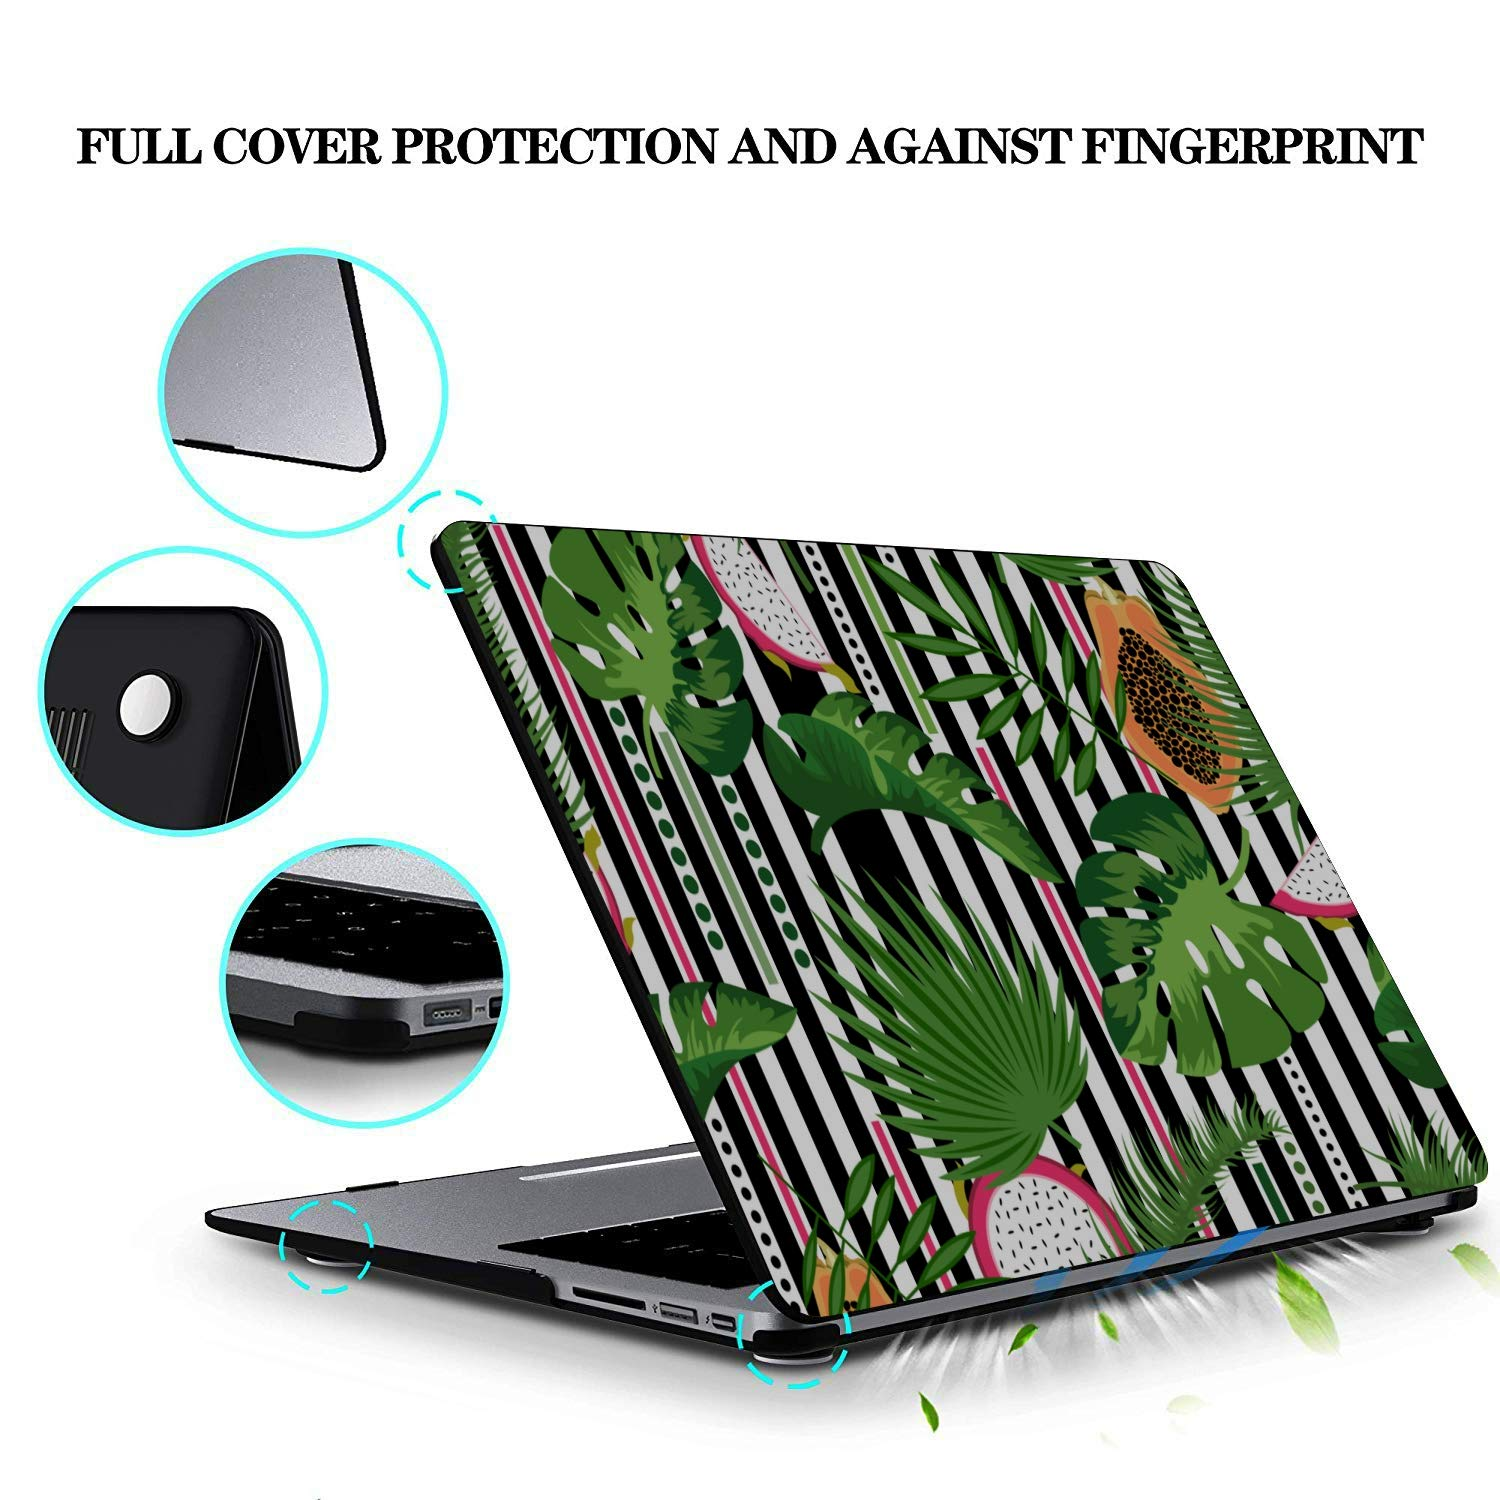 MacBook Air Hard Cover Sweet Art Tropical Fruit Dragon Leaf Plastic Hard Shell Compatible Mac Air 11 Pro 13 15 11 MacBook Air Case Protection for MacBook 2016-2019 Version